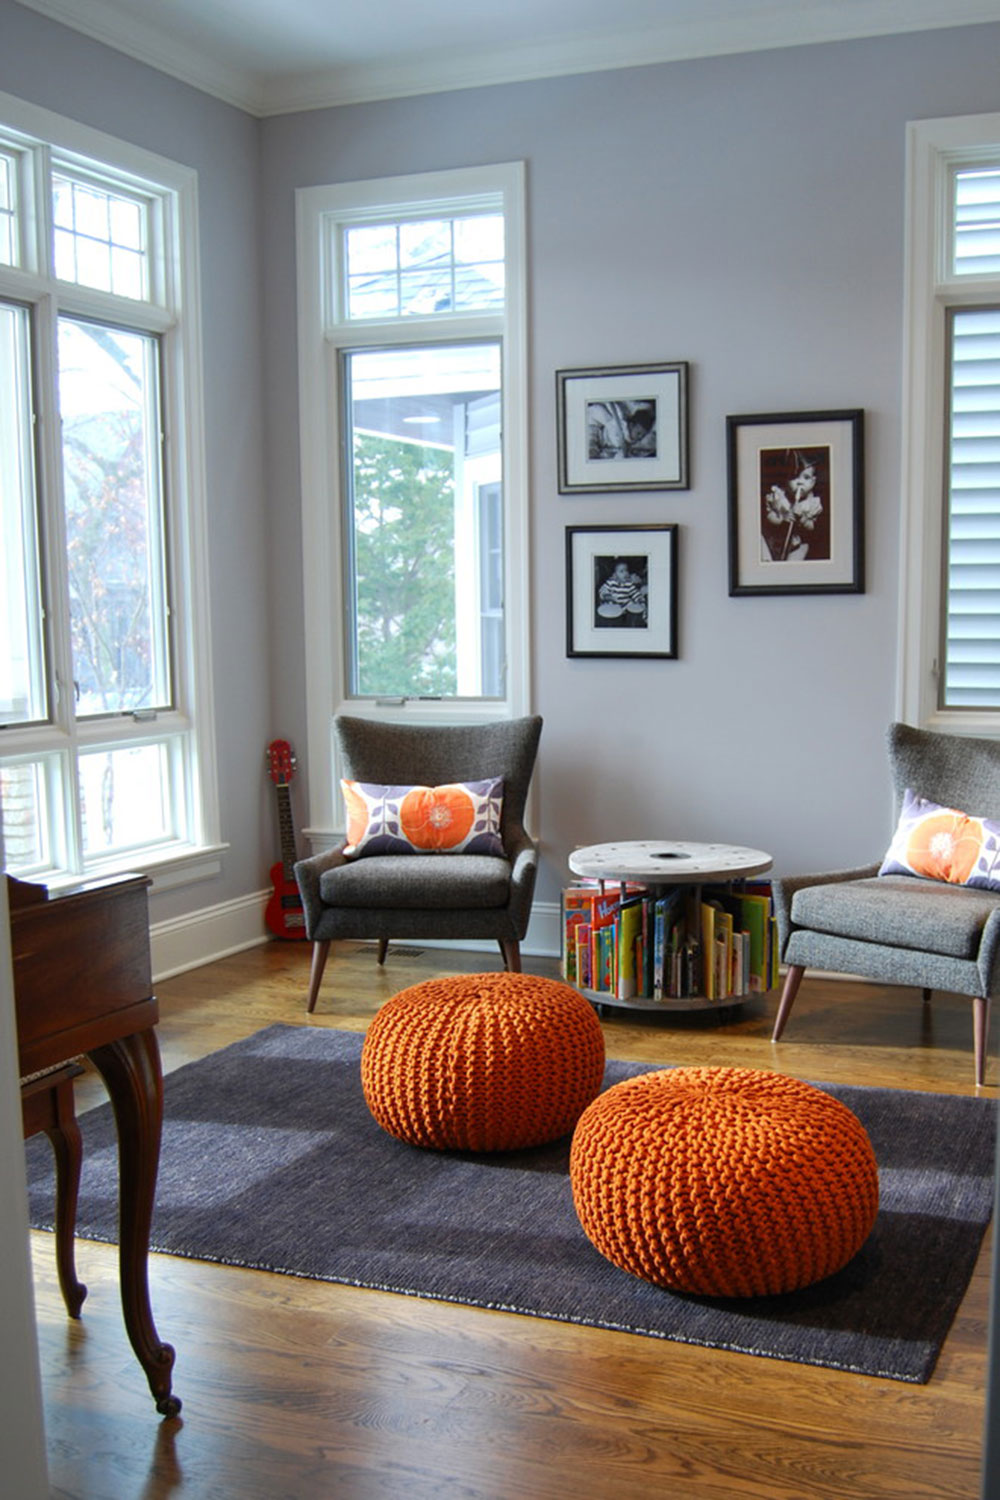 Sun-filled music and reading room from M-Interiors Tips on adding a wing chair to your room